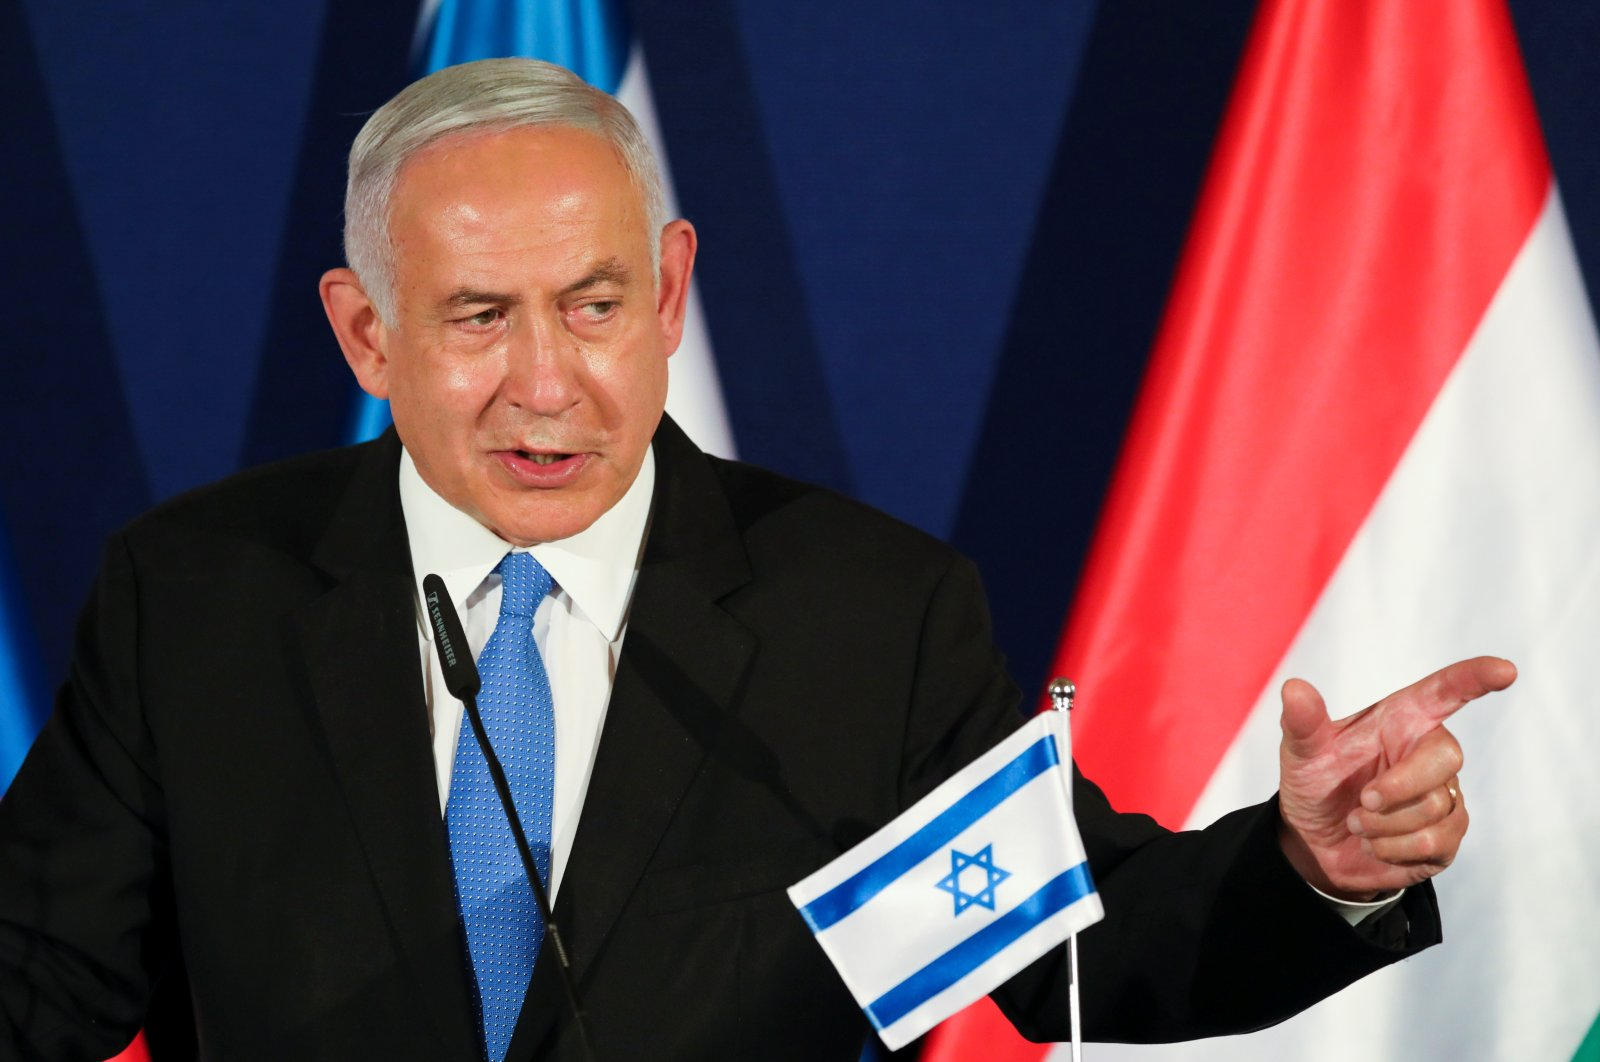 Israeli Prime Minister Benjamin Netanyahu gestures as he delivers a joint statement with Hungarian Prime Minister Viktor Orban and Czech Prime Minister Andrej Babis during their meeting in Jerusalem, Israel, March 11, 2021. (REUTERS)